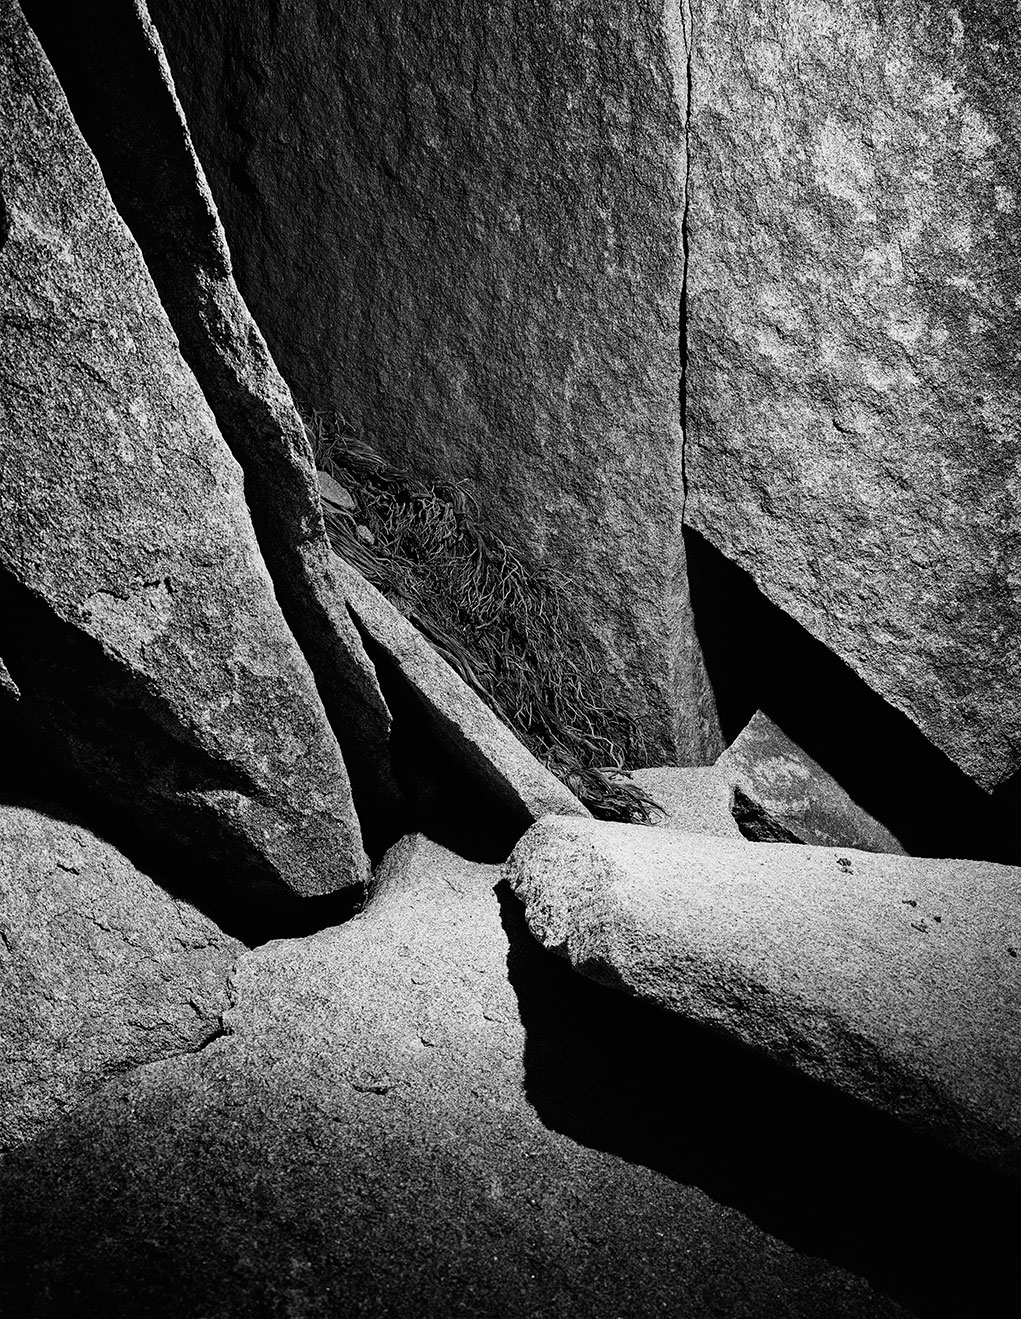 Joshua Tree - The graphic compositions of the Joshua Tree desert rocks illuminated by strobe light to make abstract shapes.